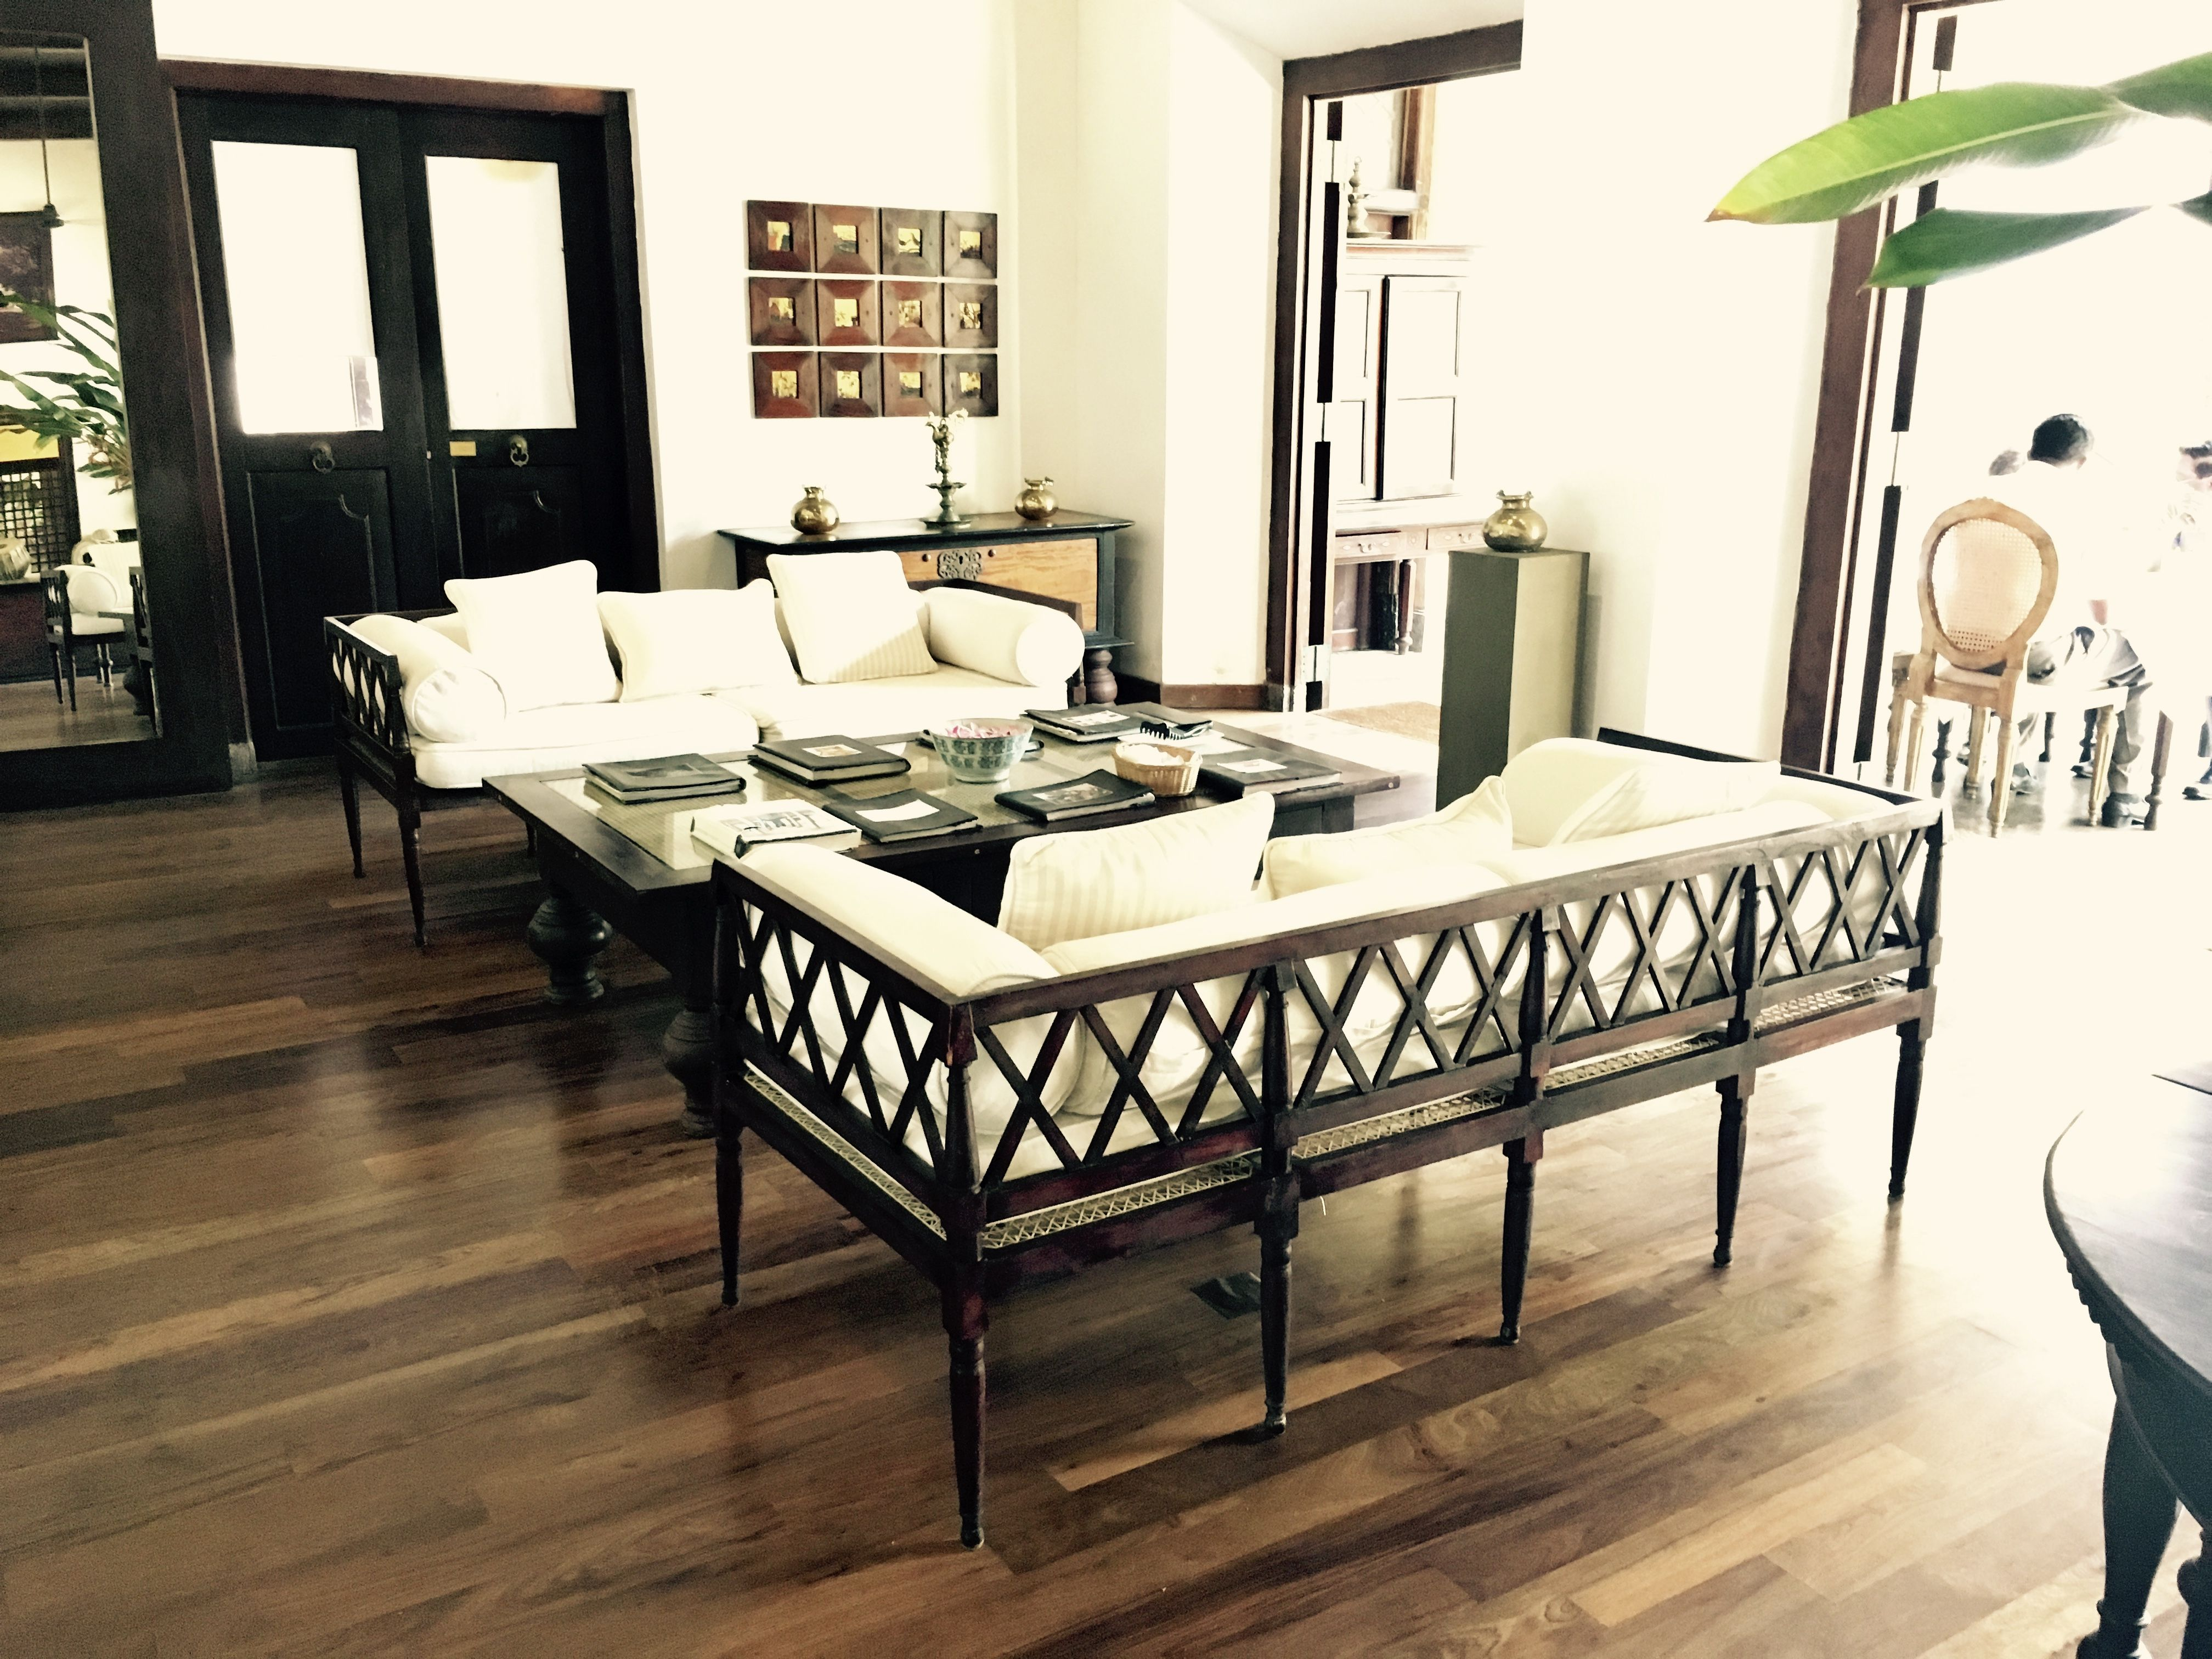 Colonial Style Hotel In Galle, Sri Lanka